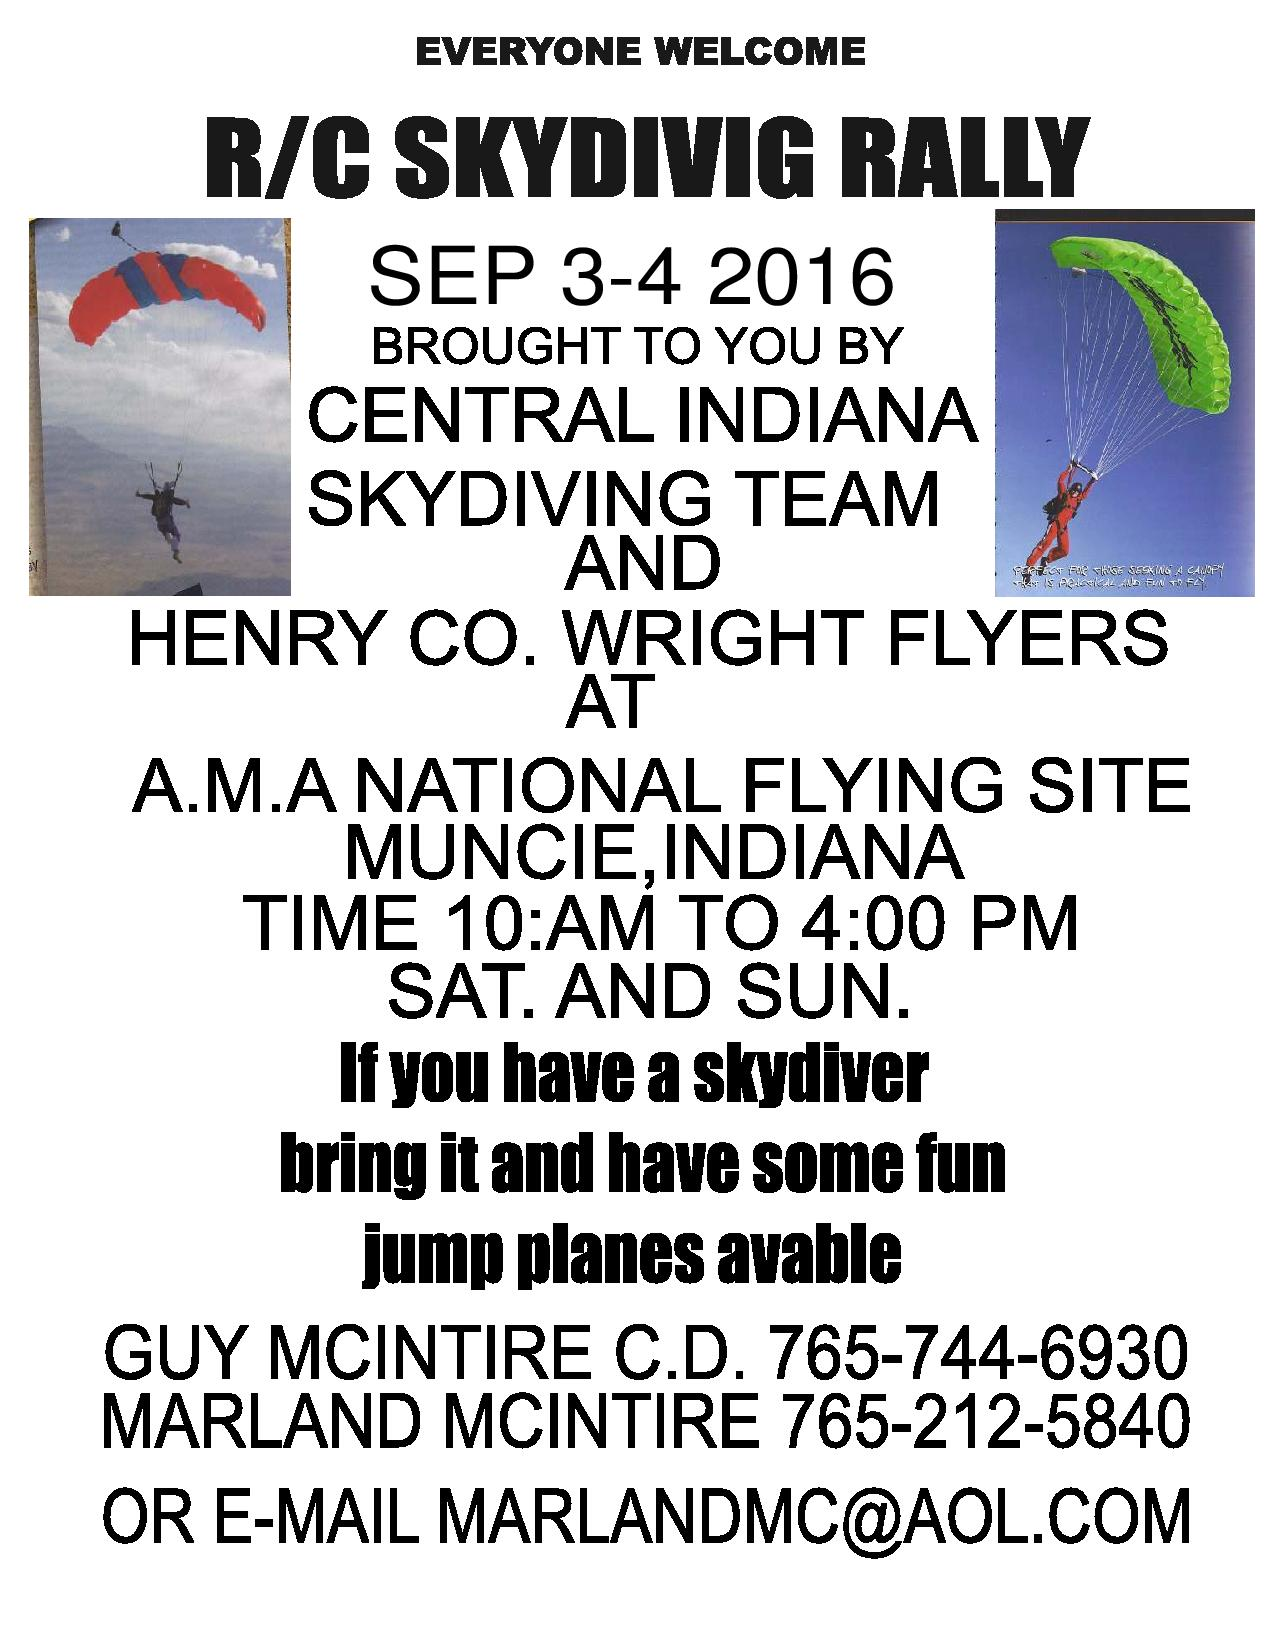 Click image for larger version  Name:fyler newskydiving16_1-page-001.jpg Views:135 Size:276.6 KB ID:2157985